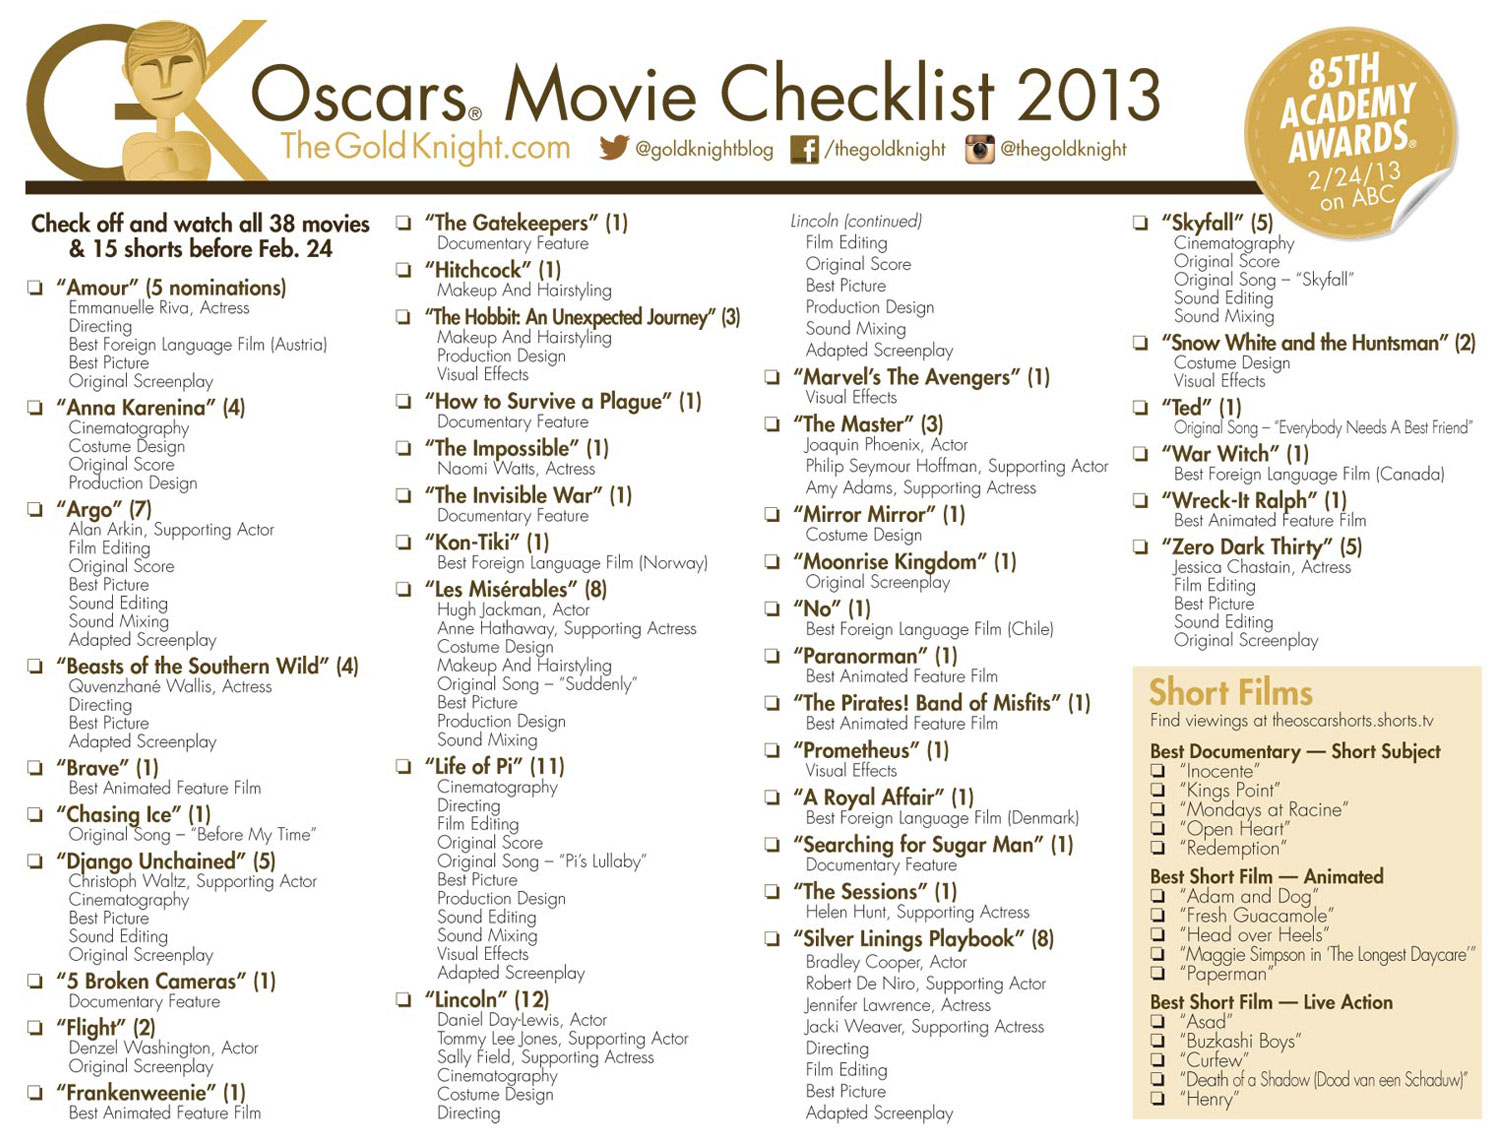 2015 Oscar Ballot Print moreover Seahawks Home And Away Stats besides Dallas Buyers Club Historical Accuracy besides Dan Dierdorf Hates The Jets furthermore New England Patriots Hard Hats. on golden globes nominations printable